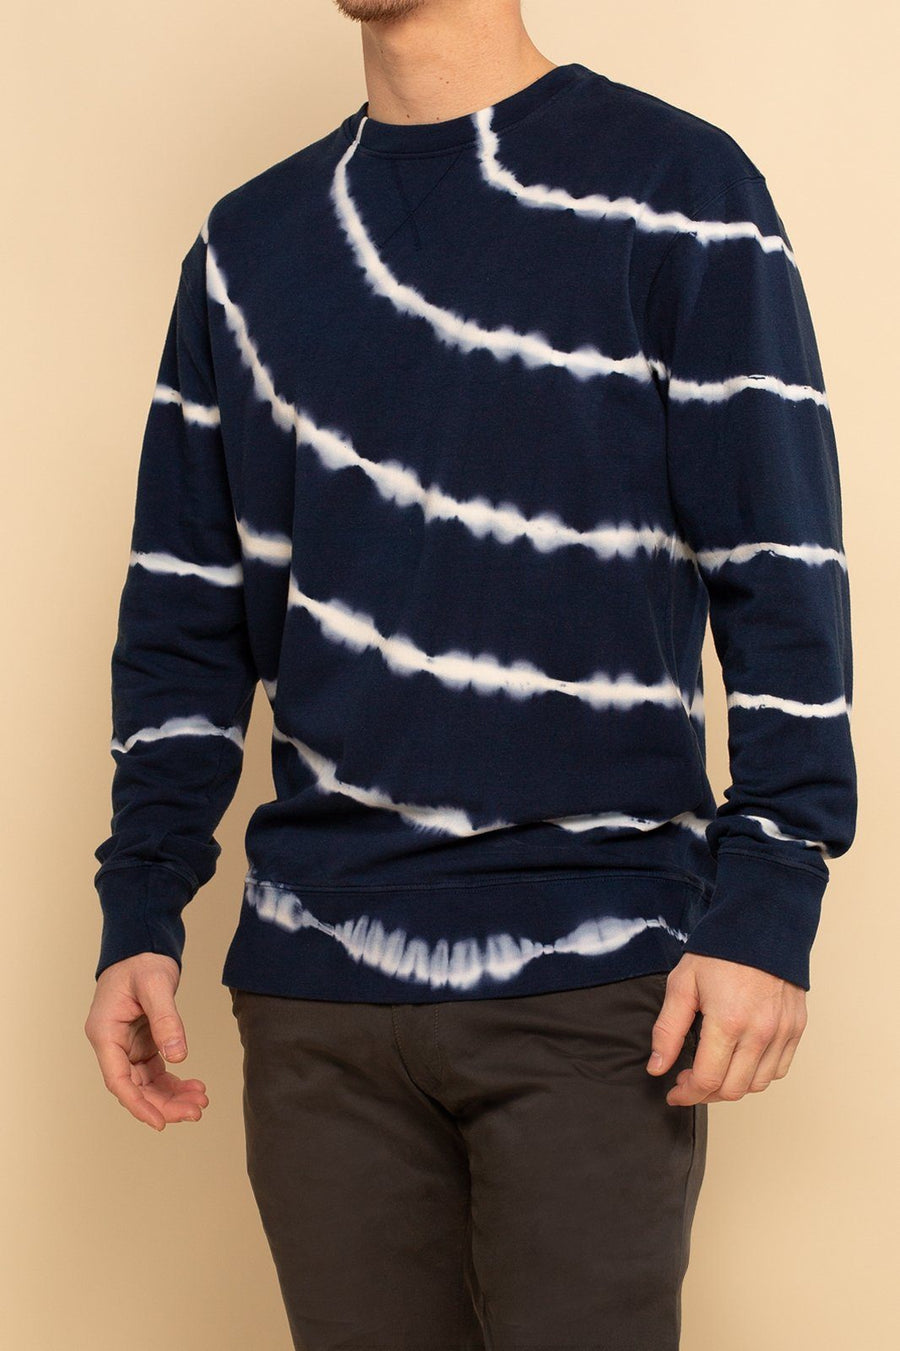 Tie Dye Long Sleeve Crew Pullover - Navy Stripe - Shore